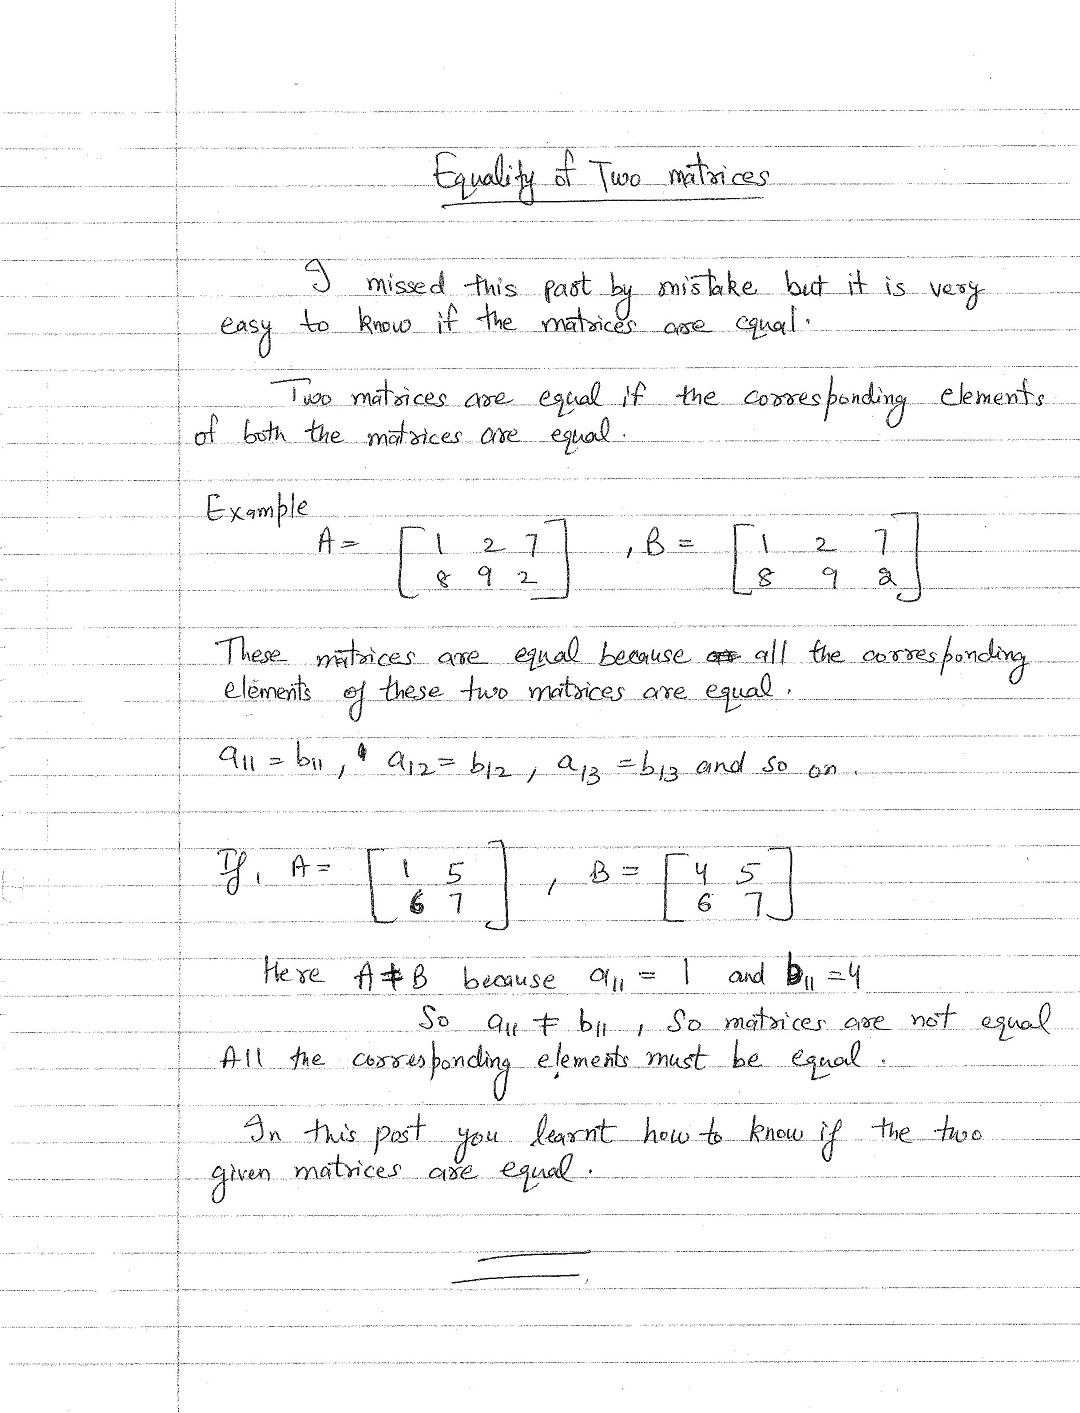 how to know if the two matrices are equal